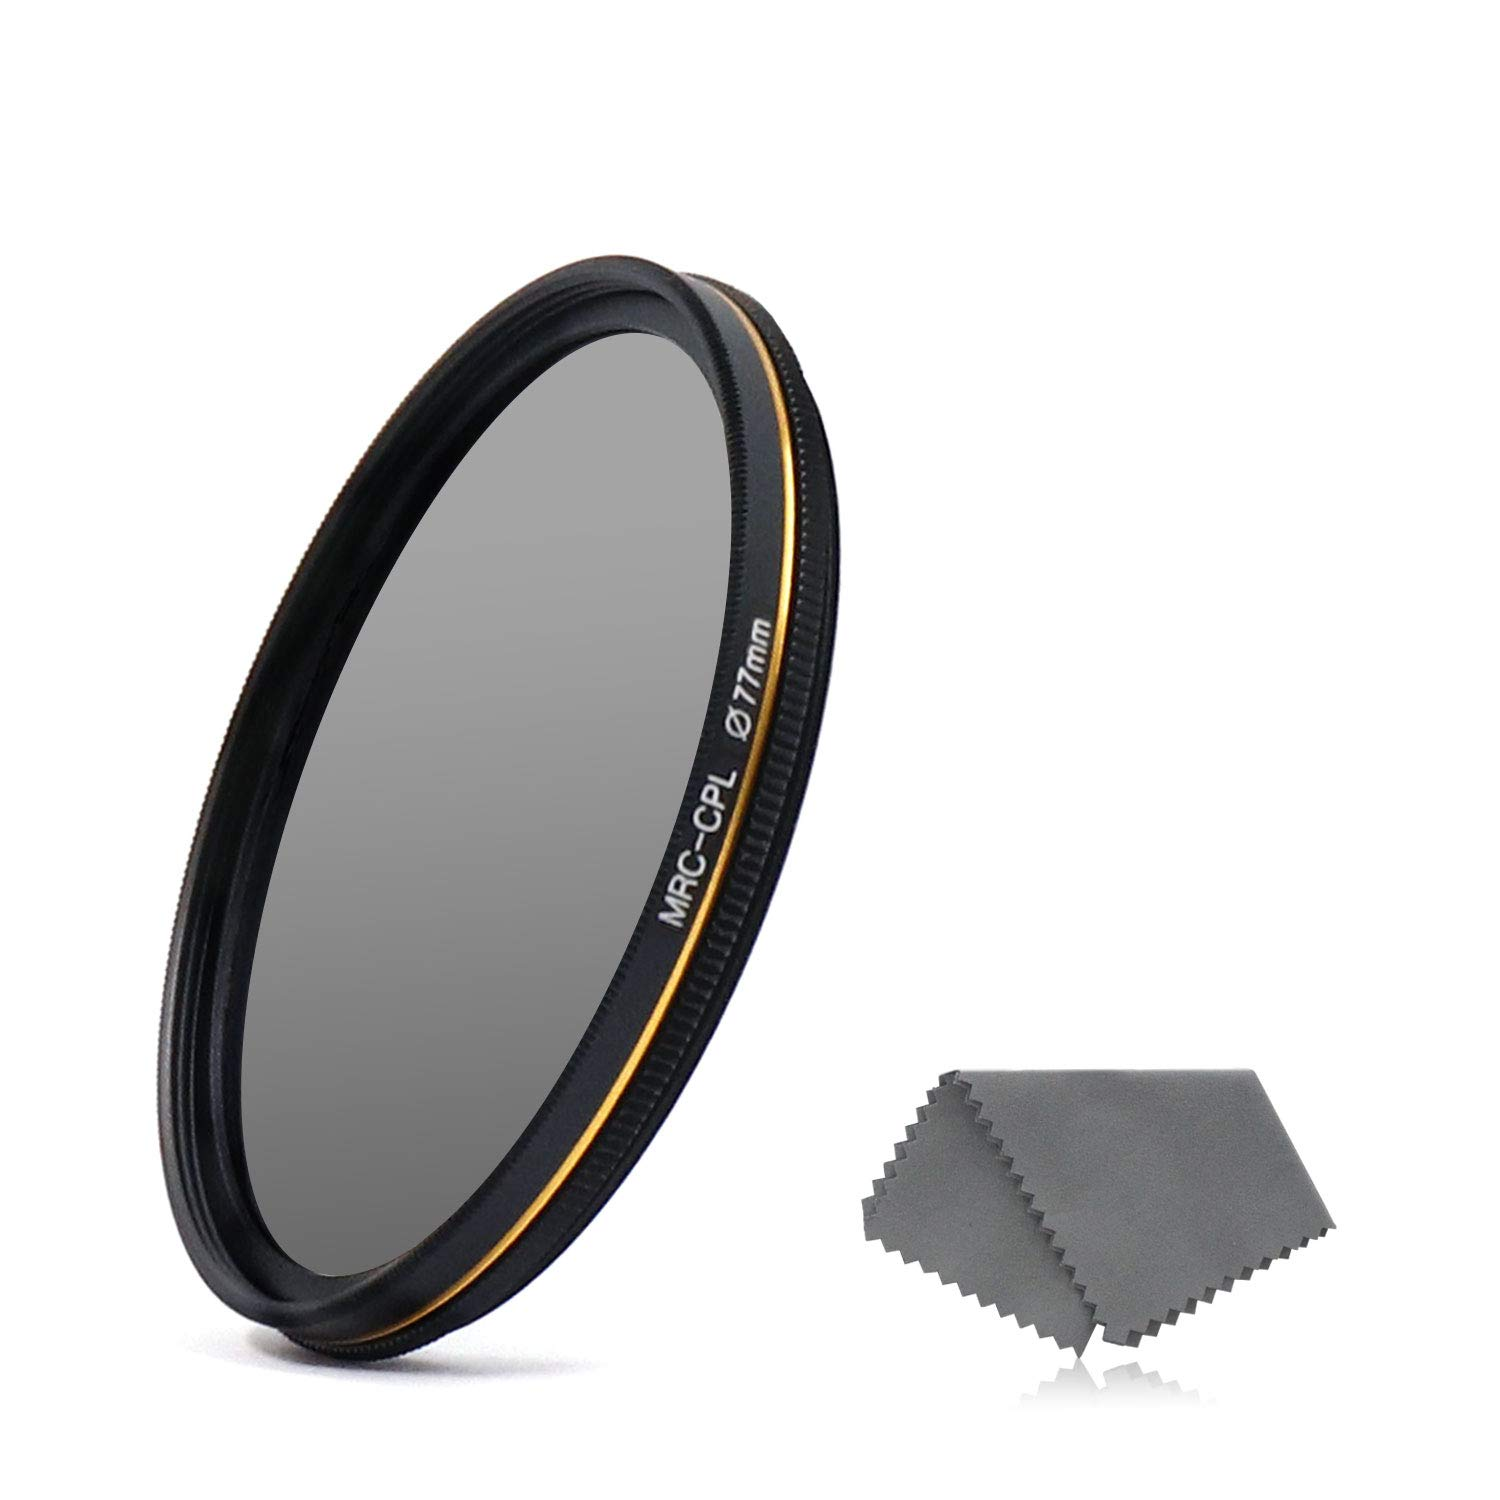 LENSKINS 77mm CPL Circular Polarizing Filter for Camera Lenses, 16-Layer Multi-Resistant Nano Coated, Ultra Slim, German Optics Glass, Weather-Sealed, Circular Polarizer Filter with Lens Cloth by LENSKINS